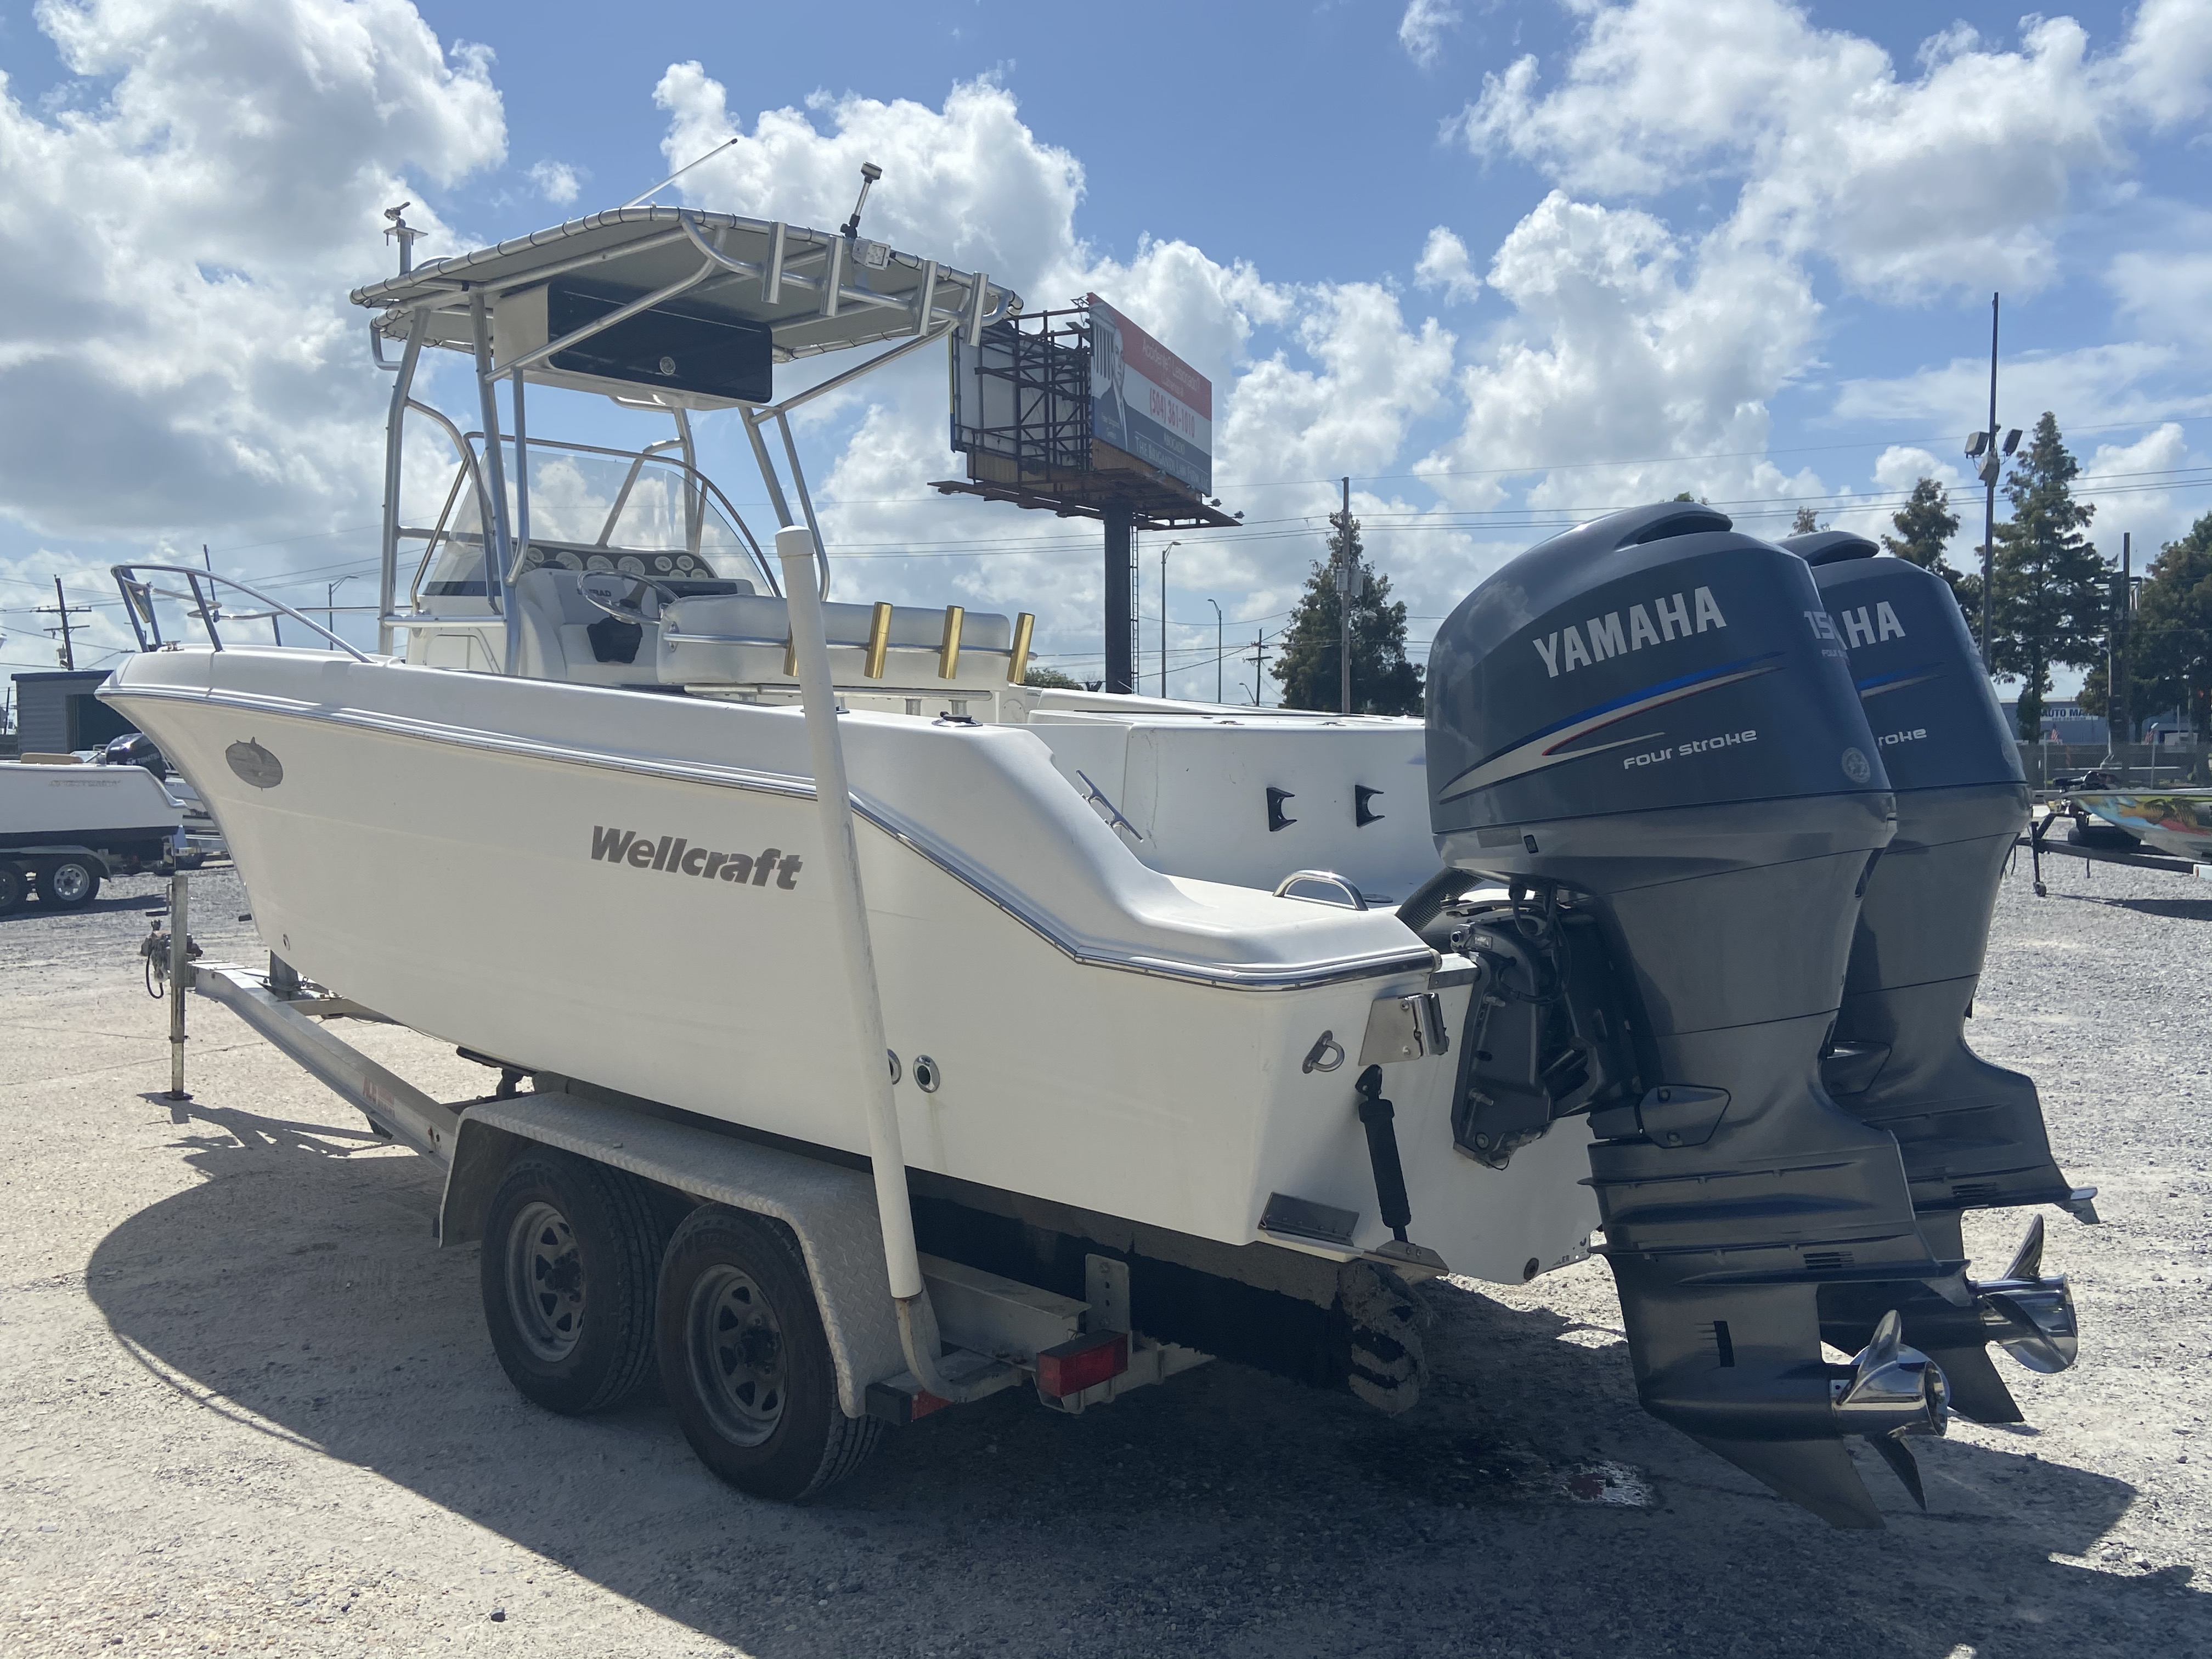 2002 Wellcraft boat for sale, model of the boat is 230 & Image # 13 of 14